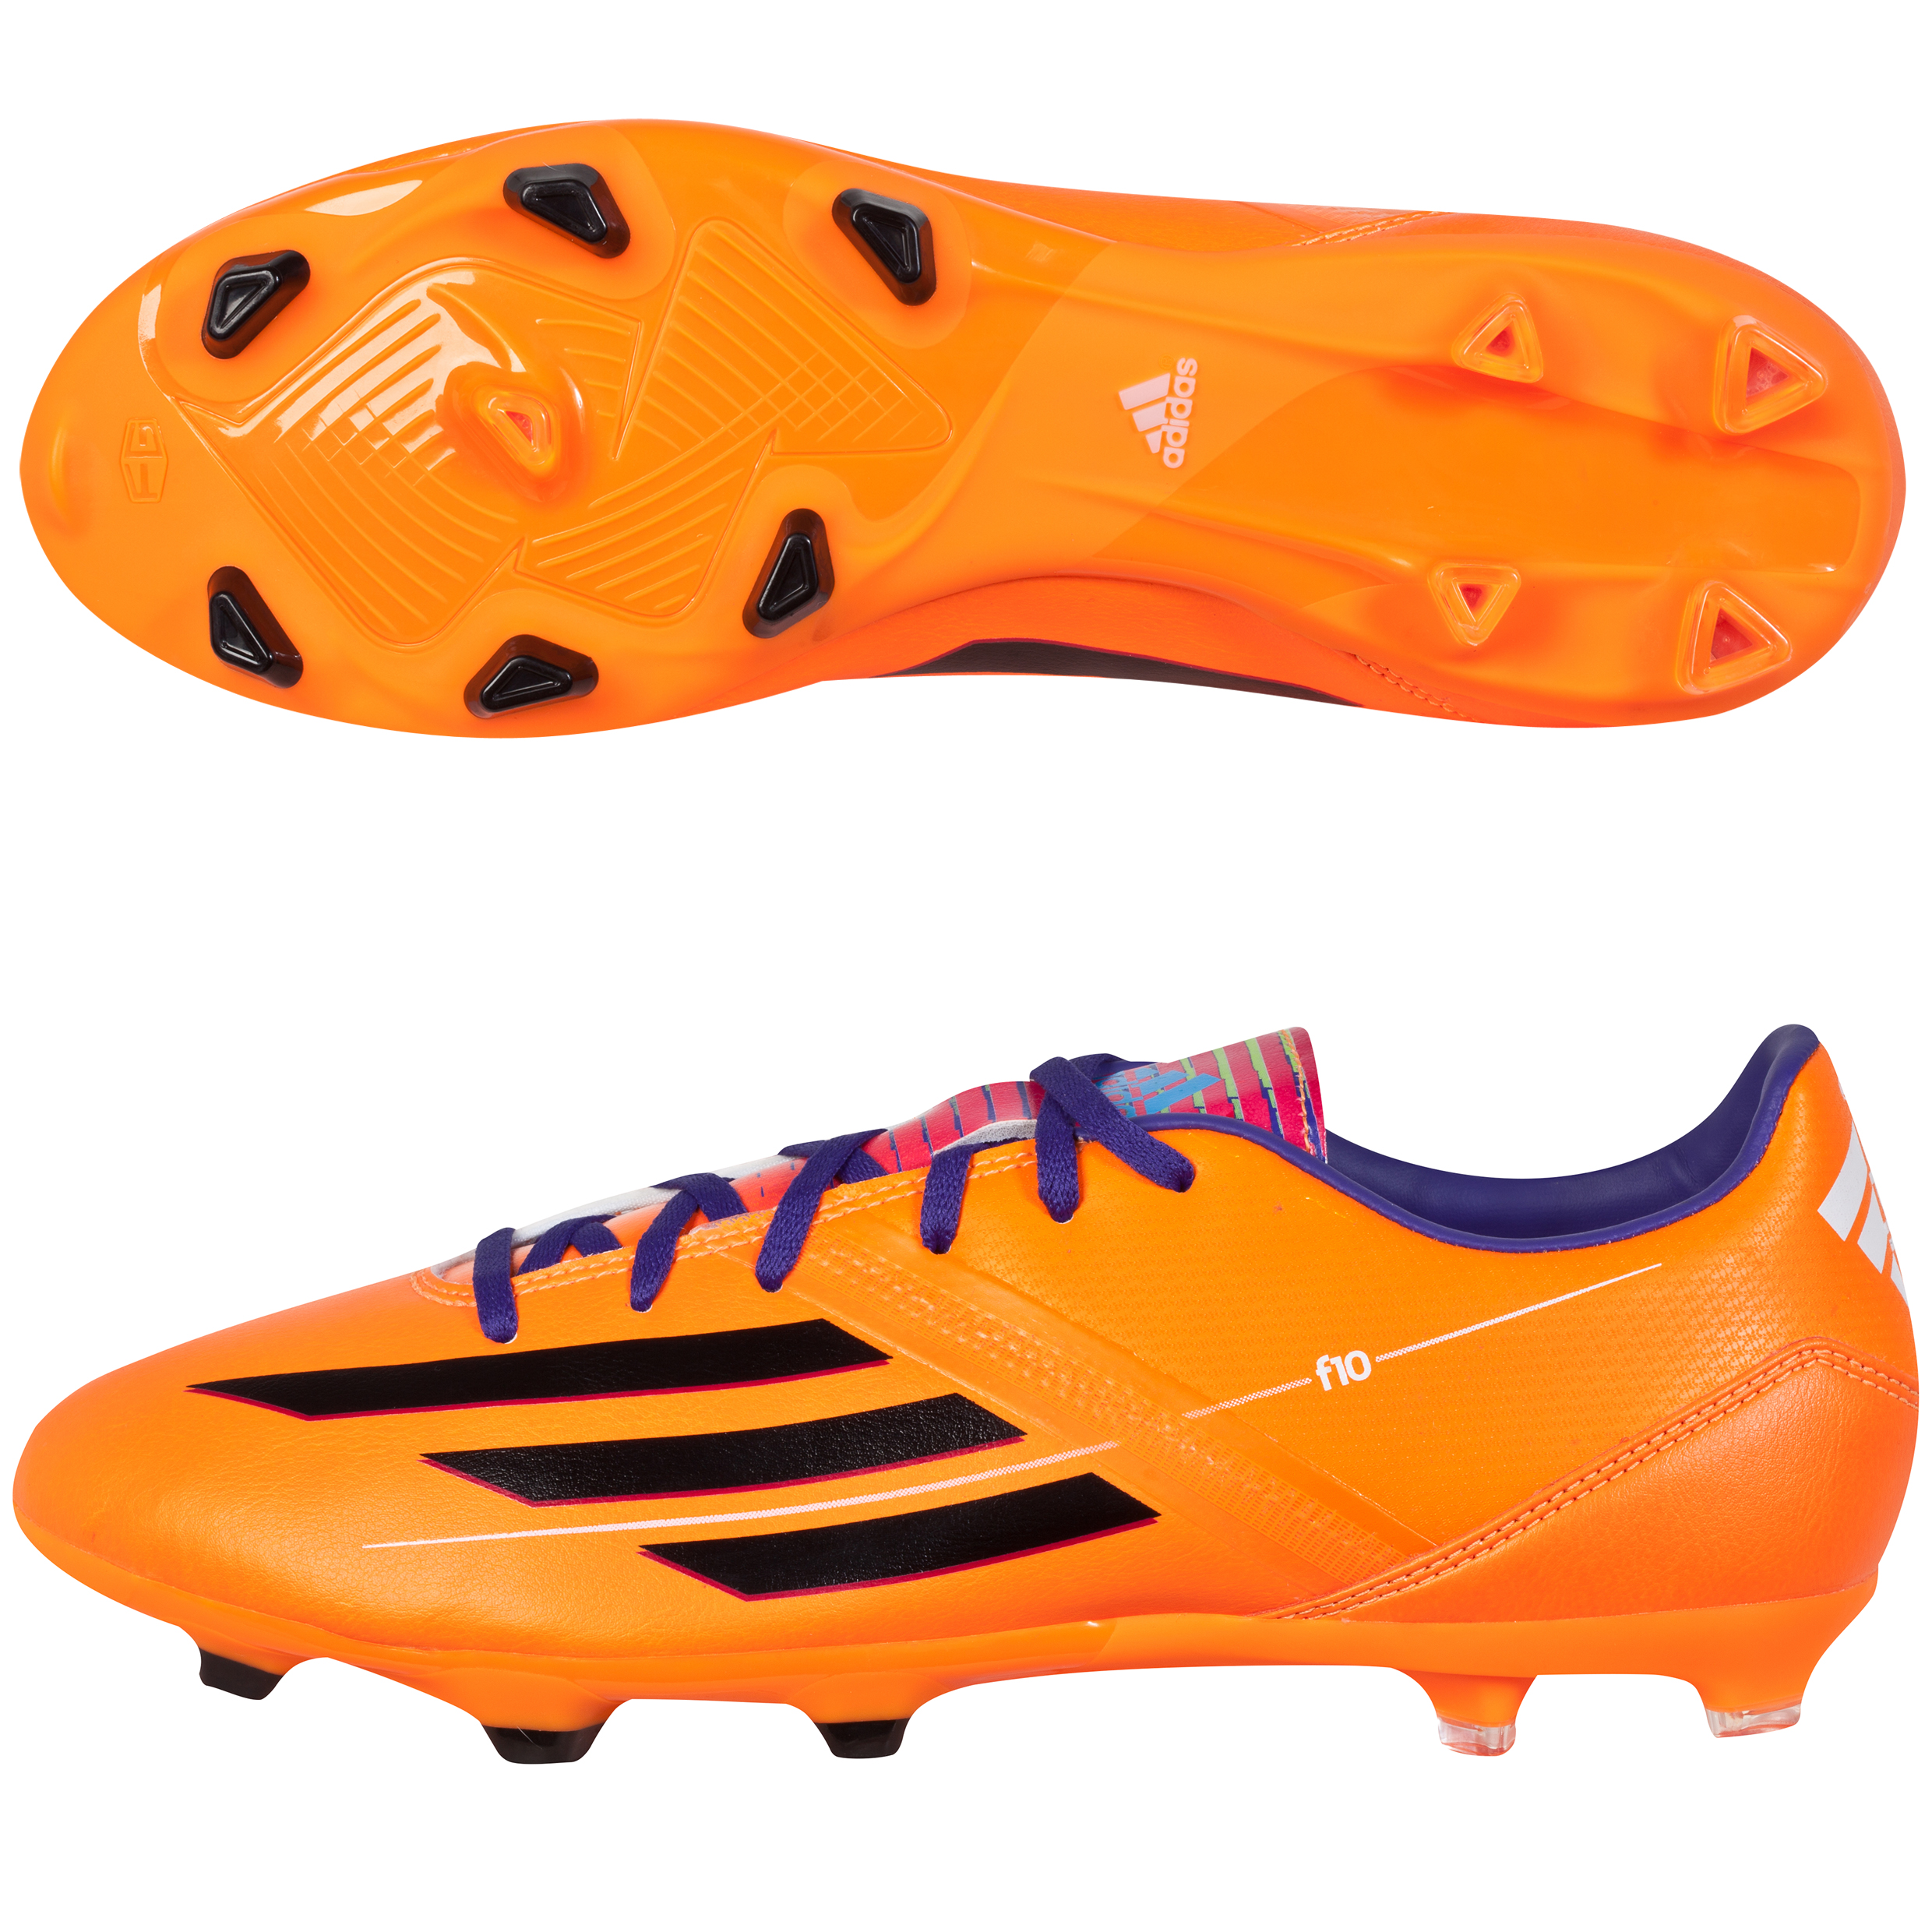 Adidas F10 TRX Firm Ground Football Boots Orange